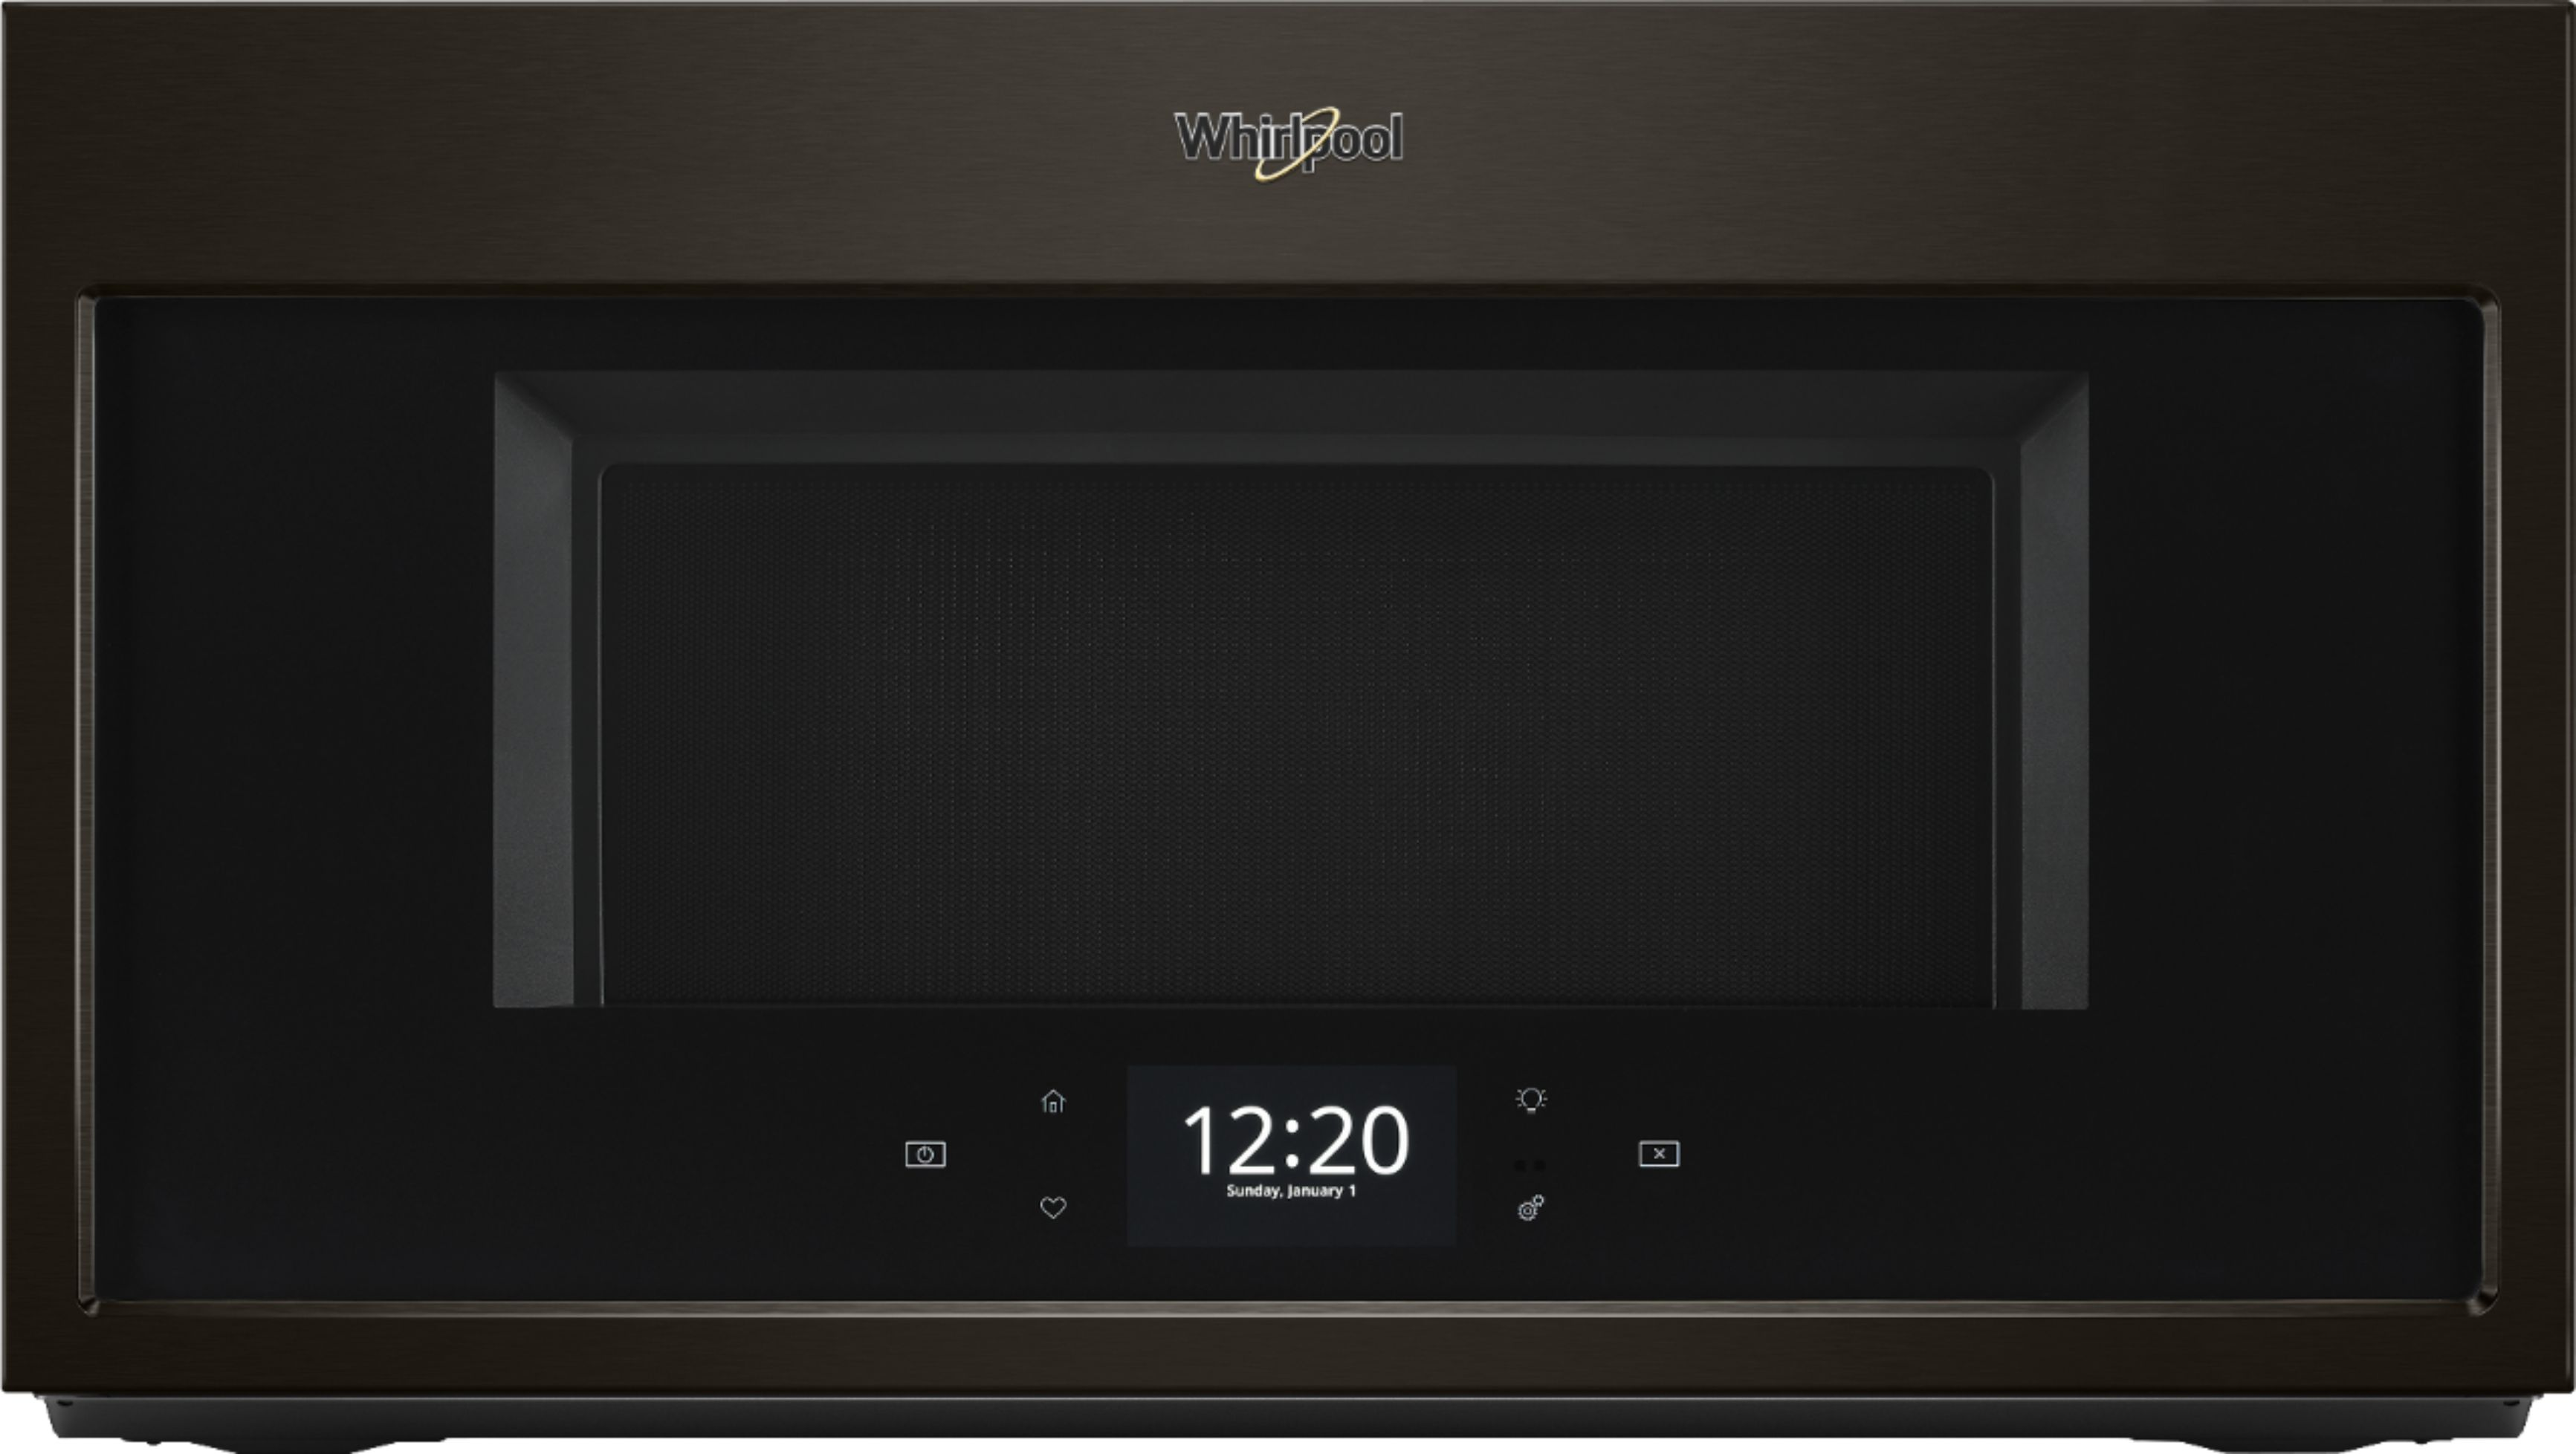 whirlpool 1 9 cu ft convection over the range microwave black stainless steel